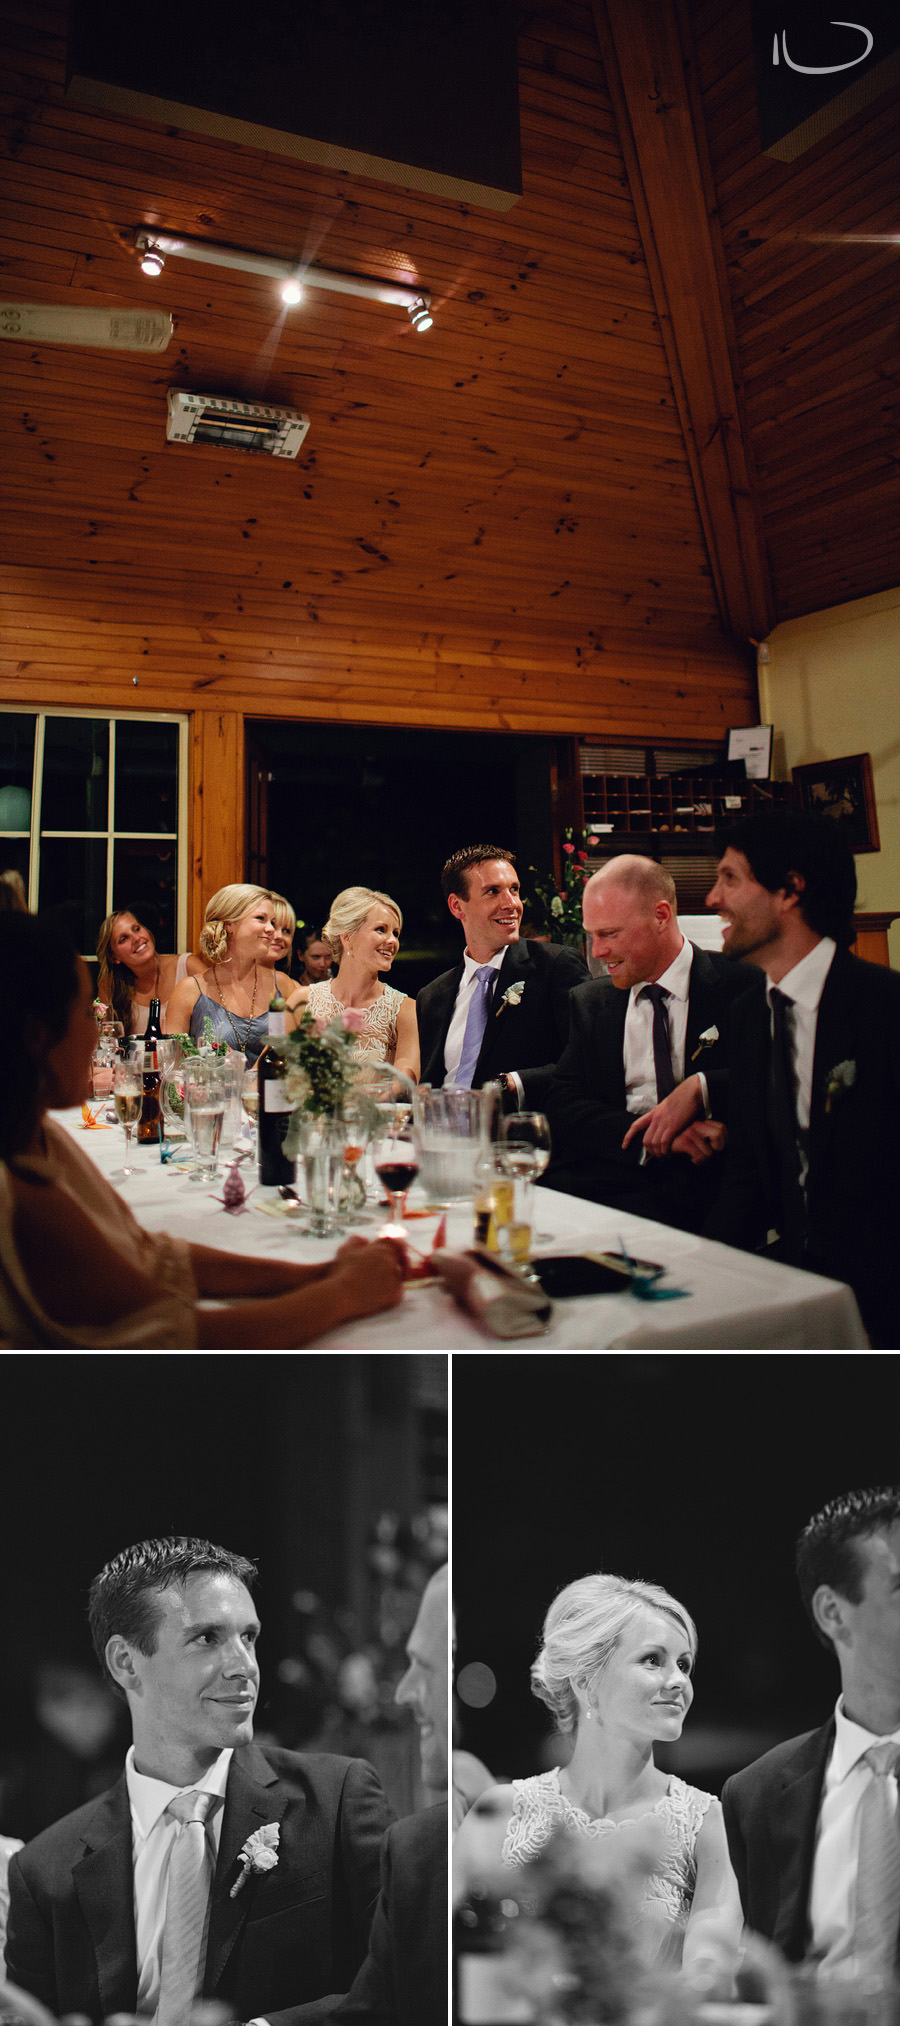 Clonnys Wedding Photography: Bride & groom watching speeches